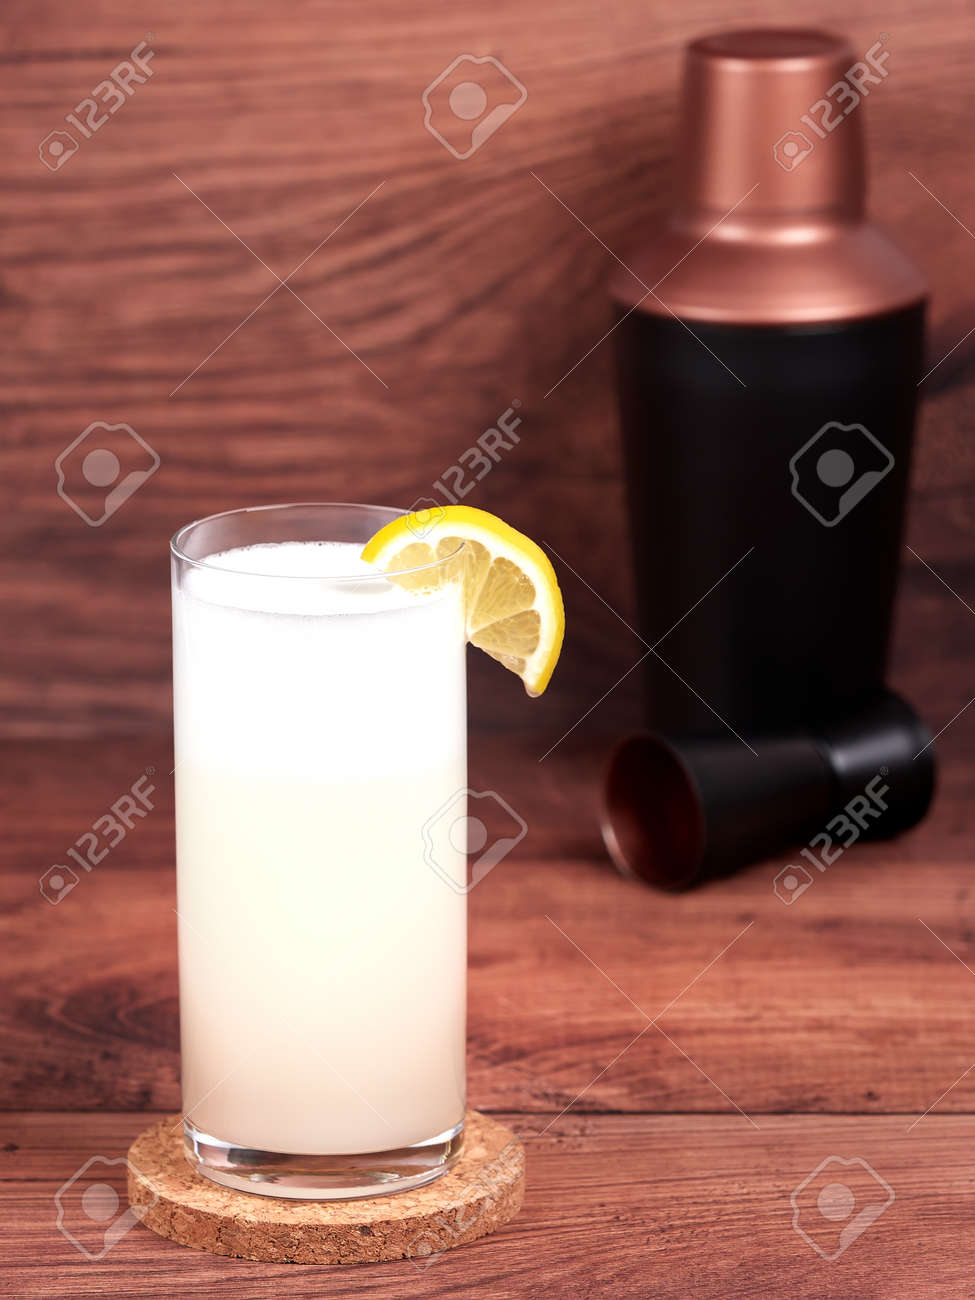 Gin fizz: a cocktail made with gin, lemon juice, simple syrup, egg white and soda water - 157025453